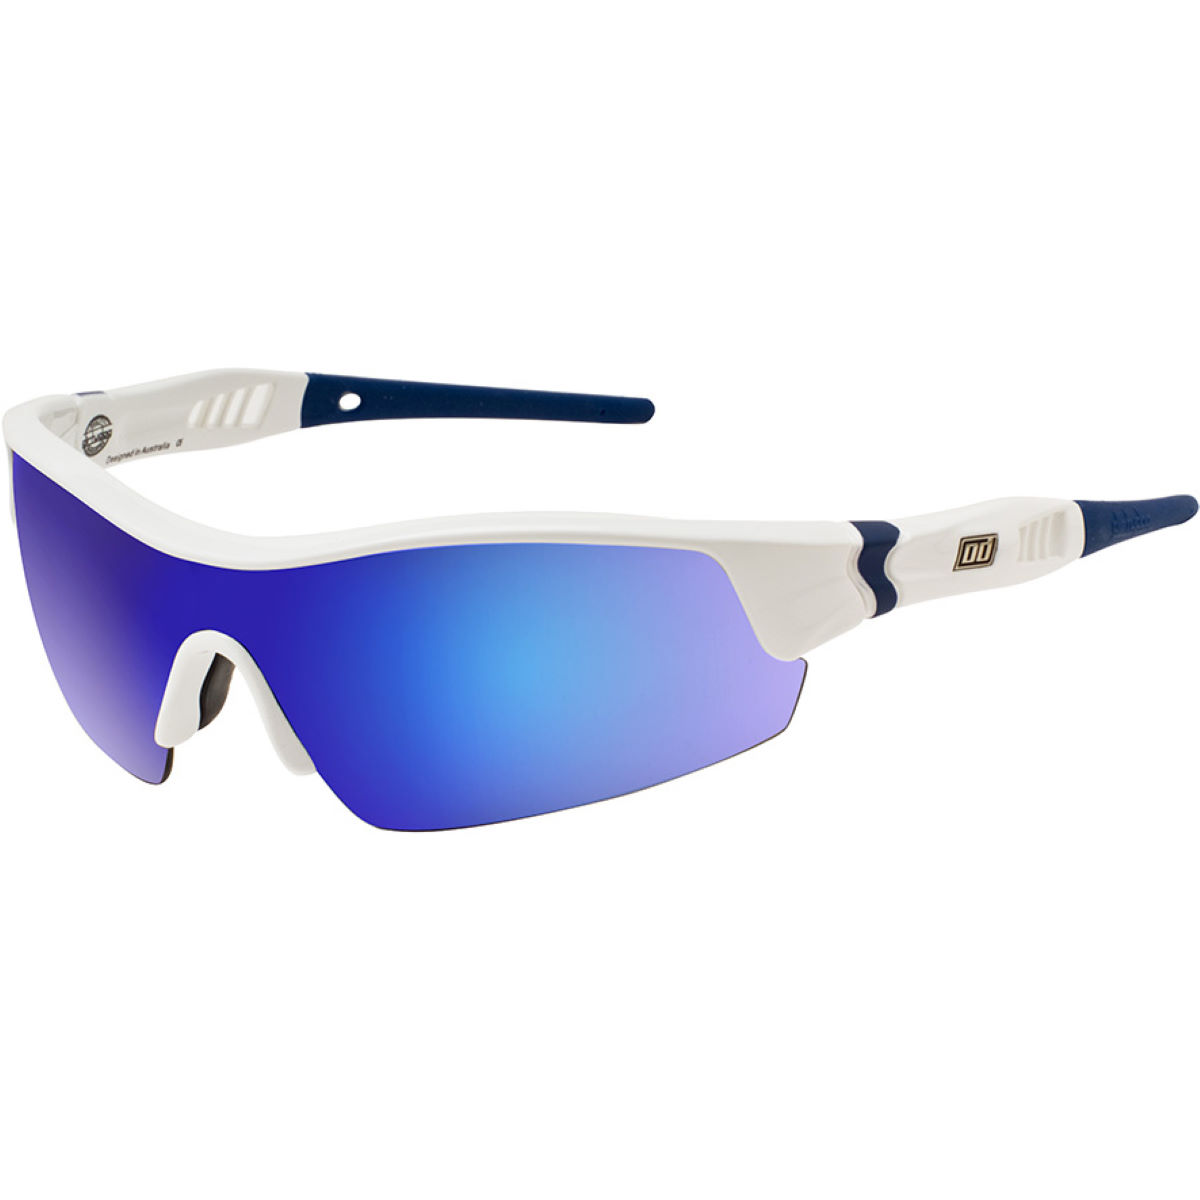 Dirty Dog Edge Mirror Sunglasses - Gafas de sol